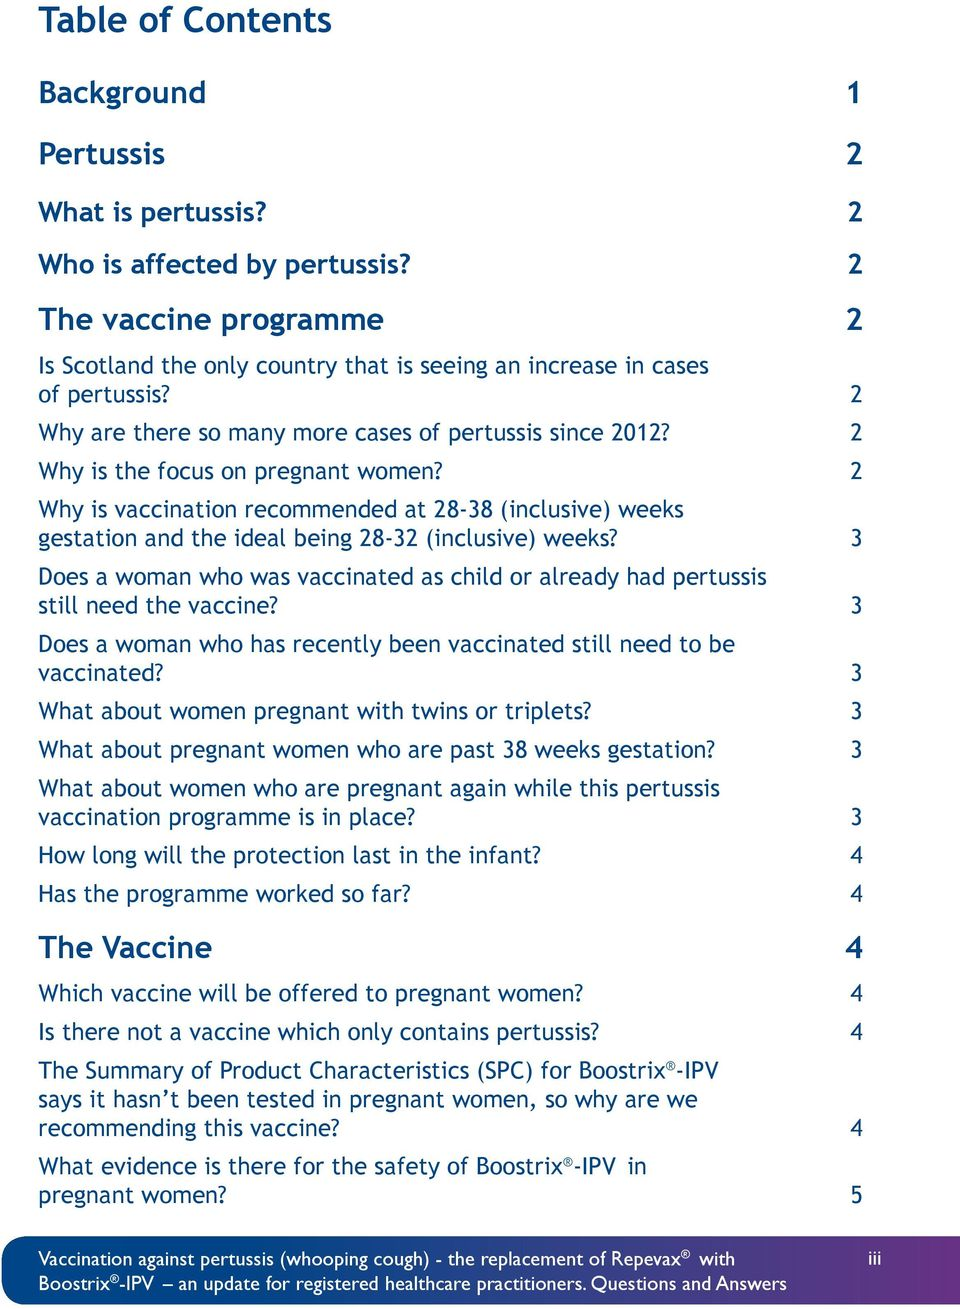 2 Why is vaccination recommended at 28-38 (inclusive) weeks gestation and the ideal being 28-32 (inclusive) weeks?